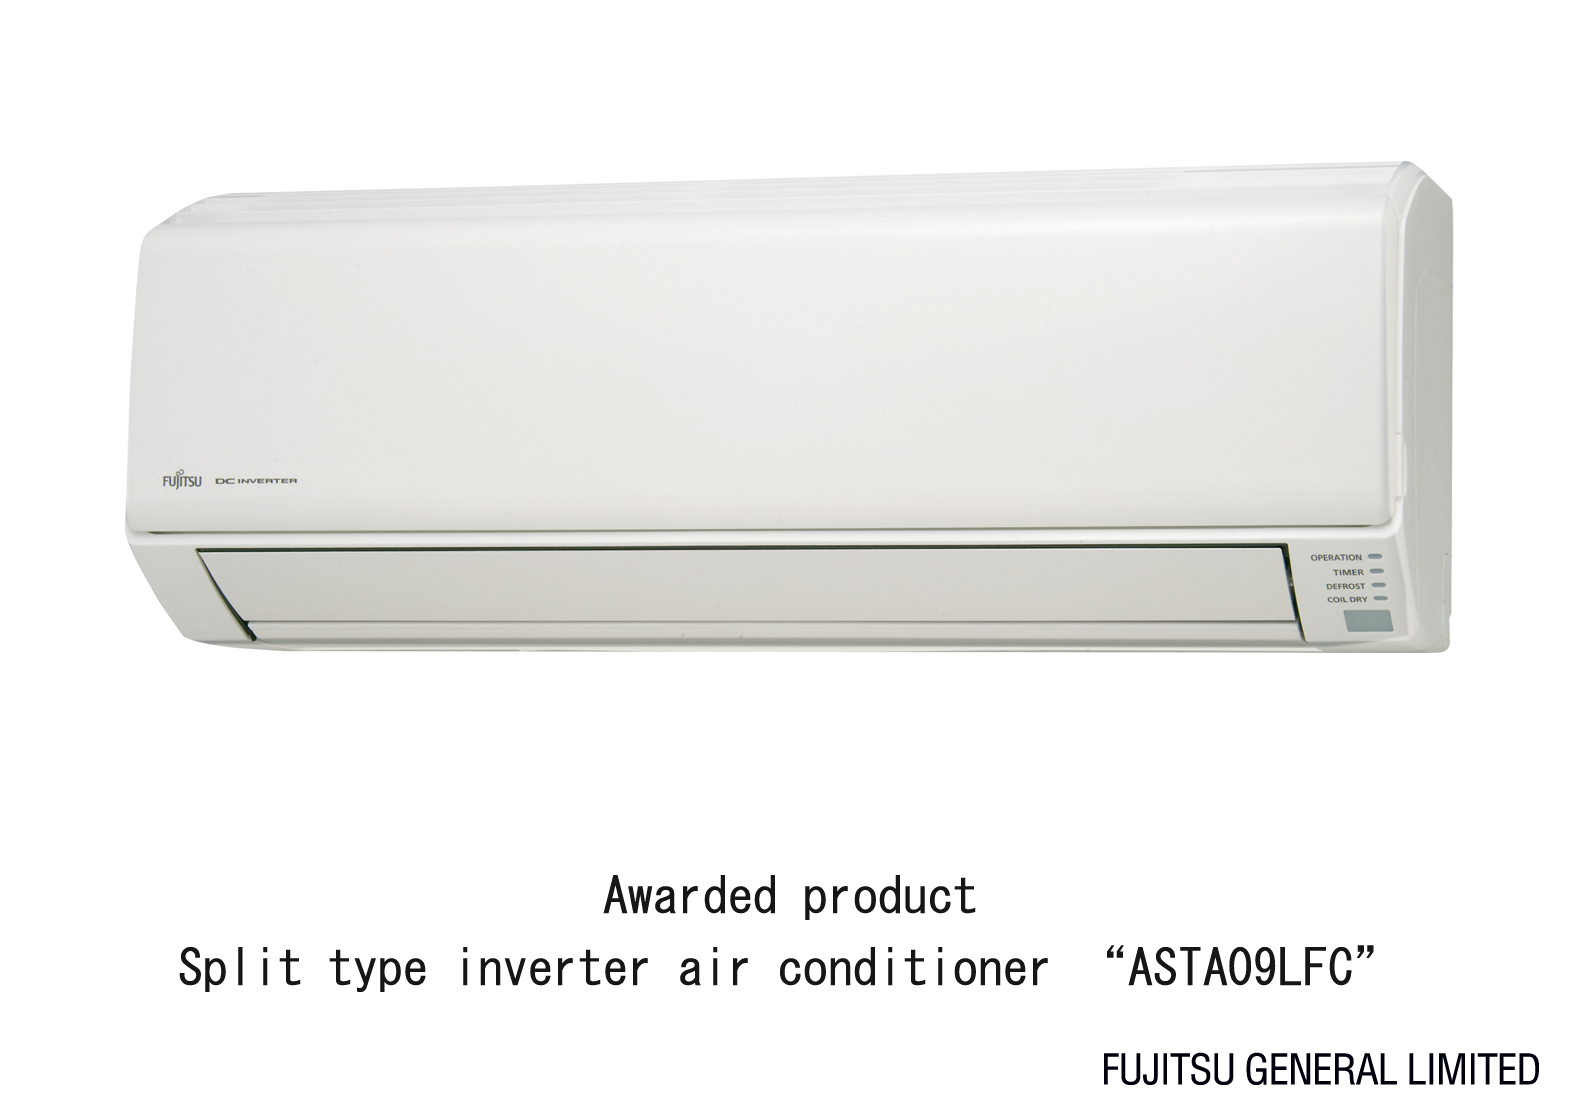 General Air Conditioners Winning Australias Most Efficient Single Phase Air Conditioner